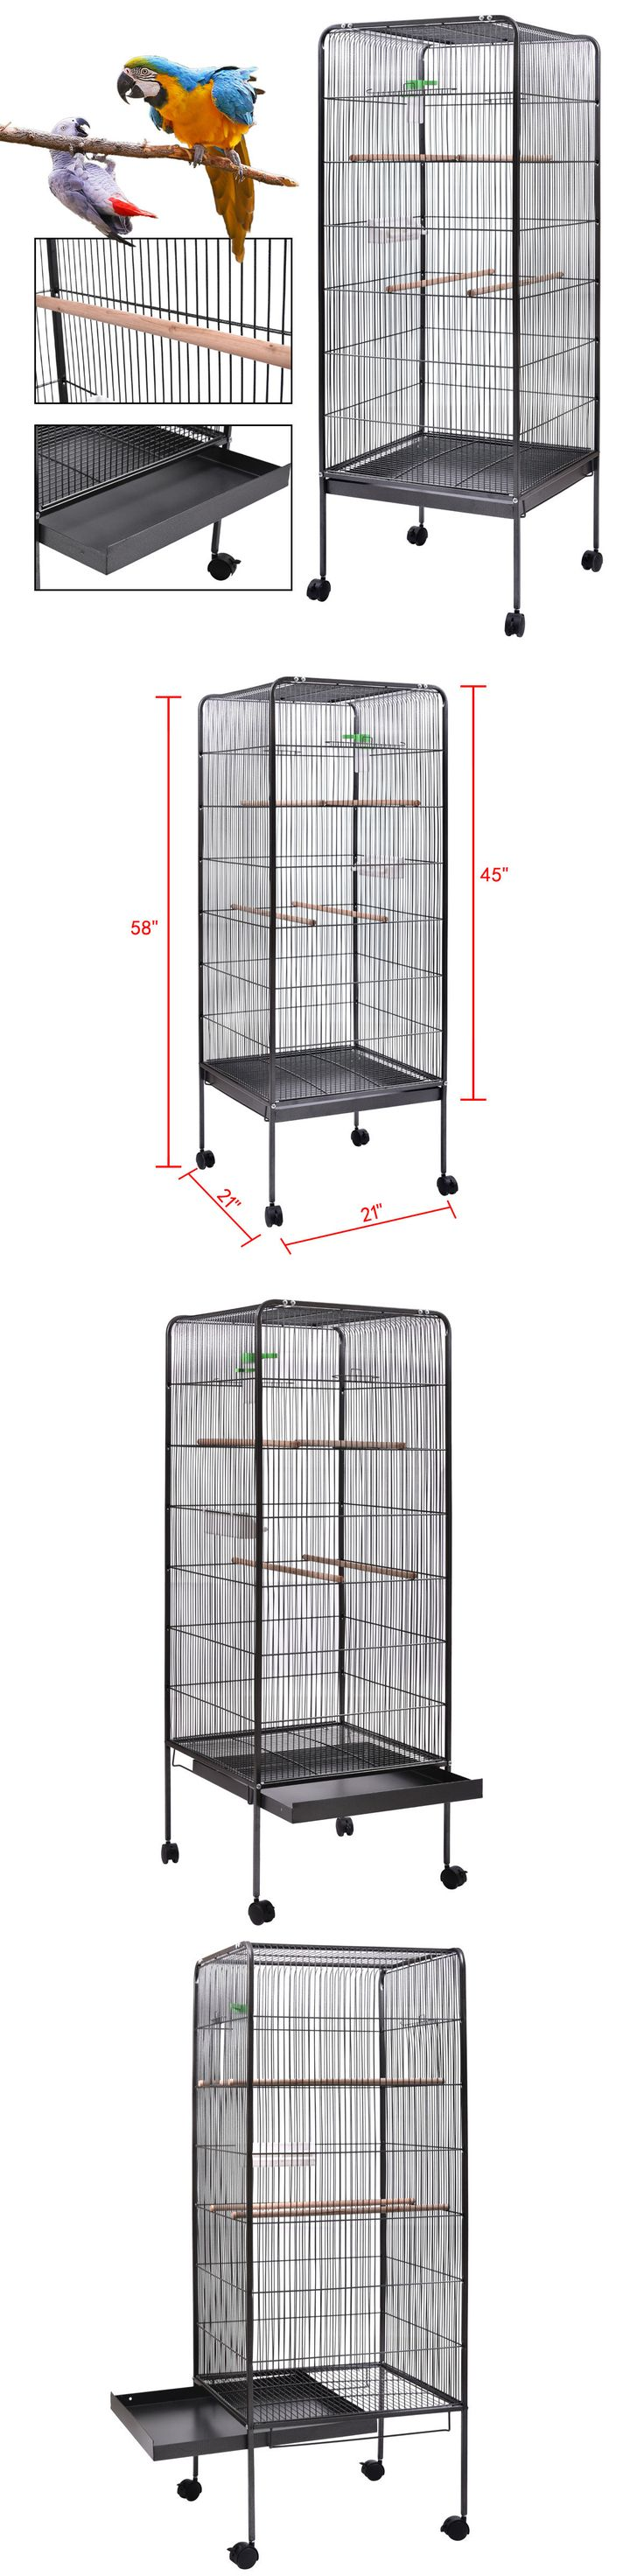 Cages 46289: Flattop Parrot Finch Bird Cage 58 Largeplay Top Pet Supplies W/Perch Stand -> BUY IT NOW ONLY: $57.59 on eBay!